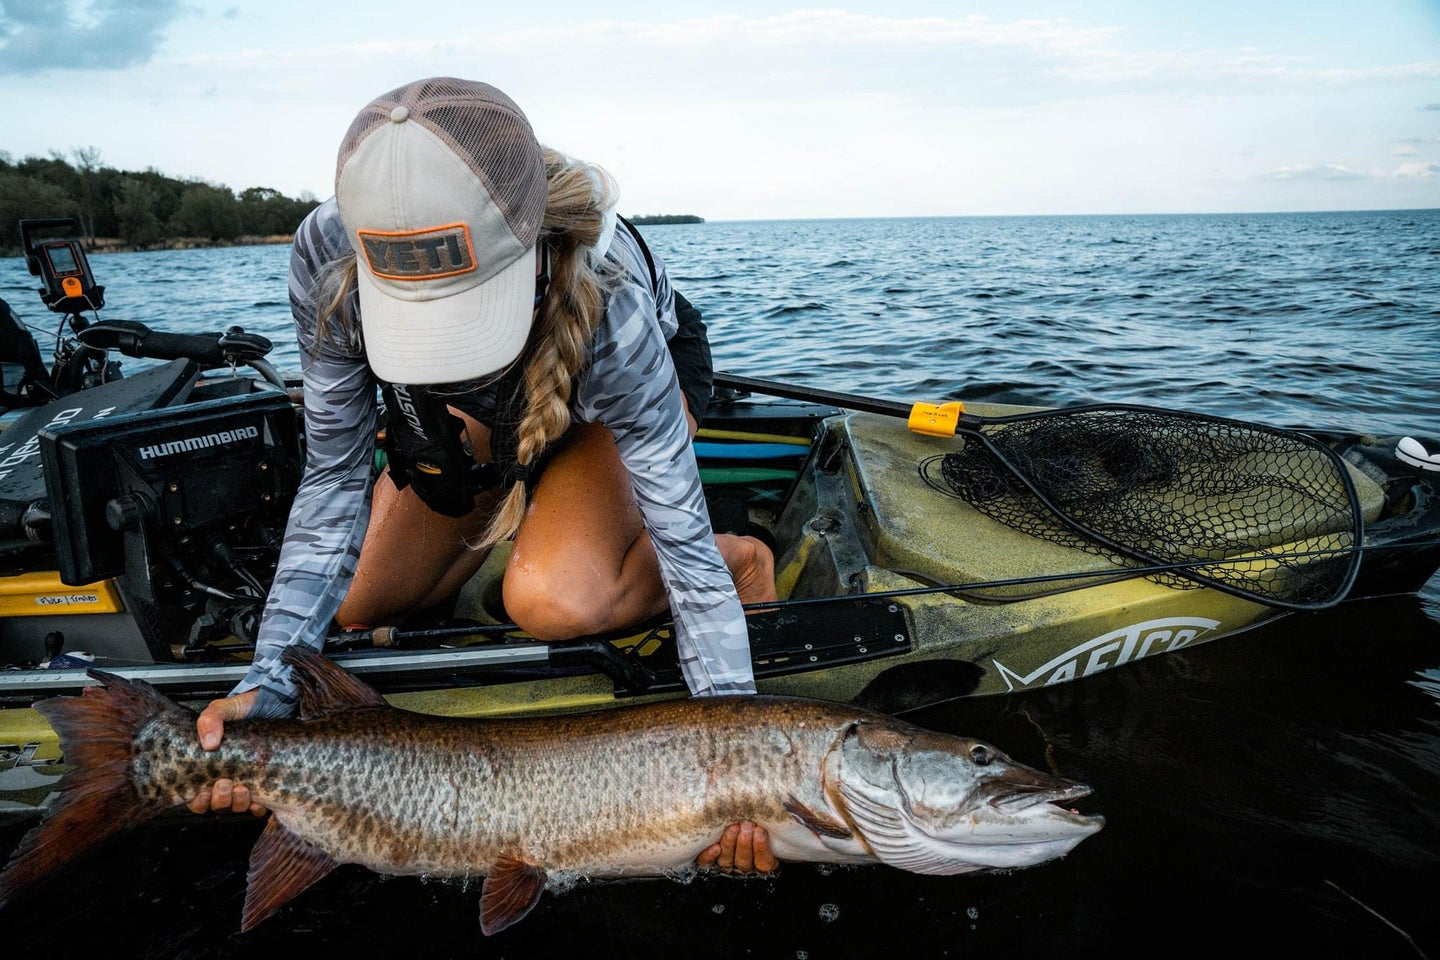 Change up your baits to catch more muskie.